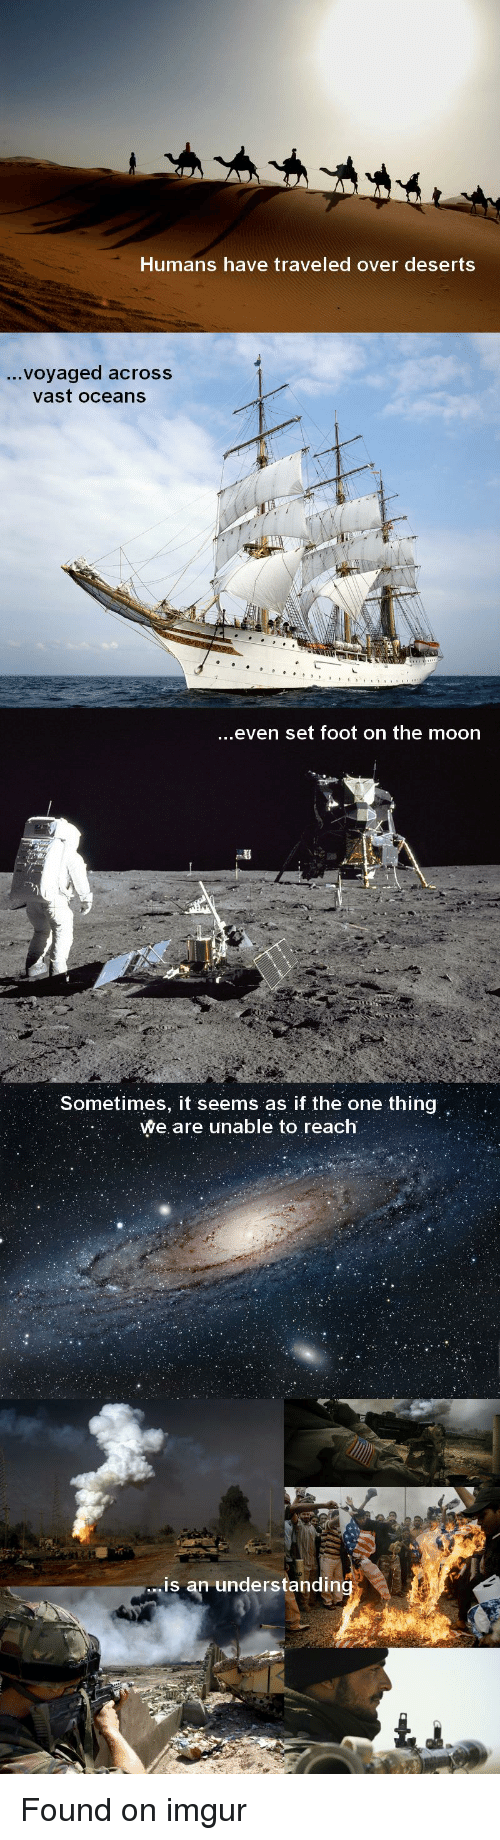 Im 14 & This Is Deep: Humans have traveled over deserts  voyaged across  vast oceans  ..even set foot on the moon  Sometimes, it seems as if the one thing  We are unable to reach  is an understandin Found on imgur